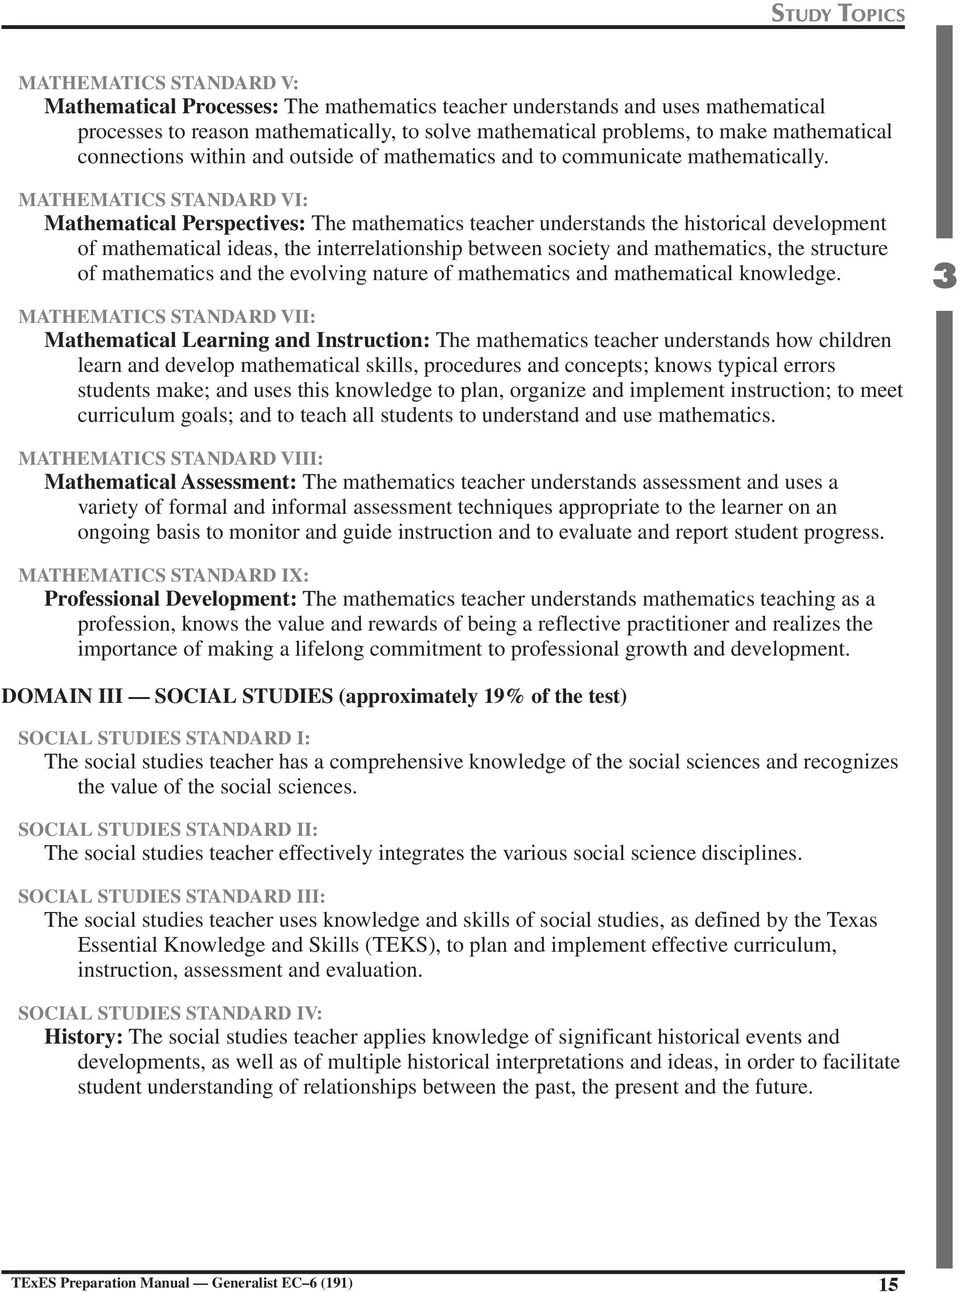 MATHEMATICS STANDARD VI: Mathematical Perspectives: The mathematics teacher understands the historical development of mathematical ideas, the interrelationship between society and mathematics, the